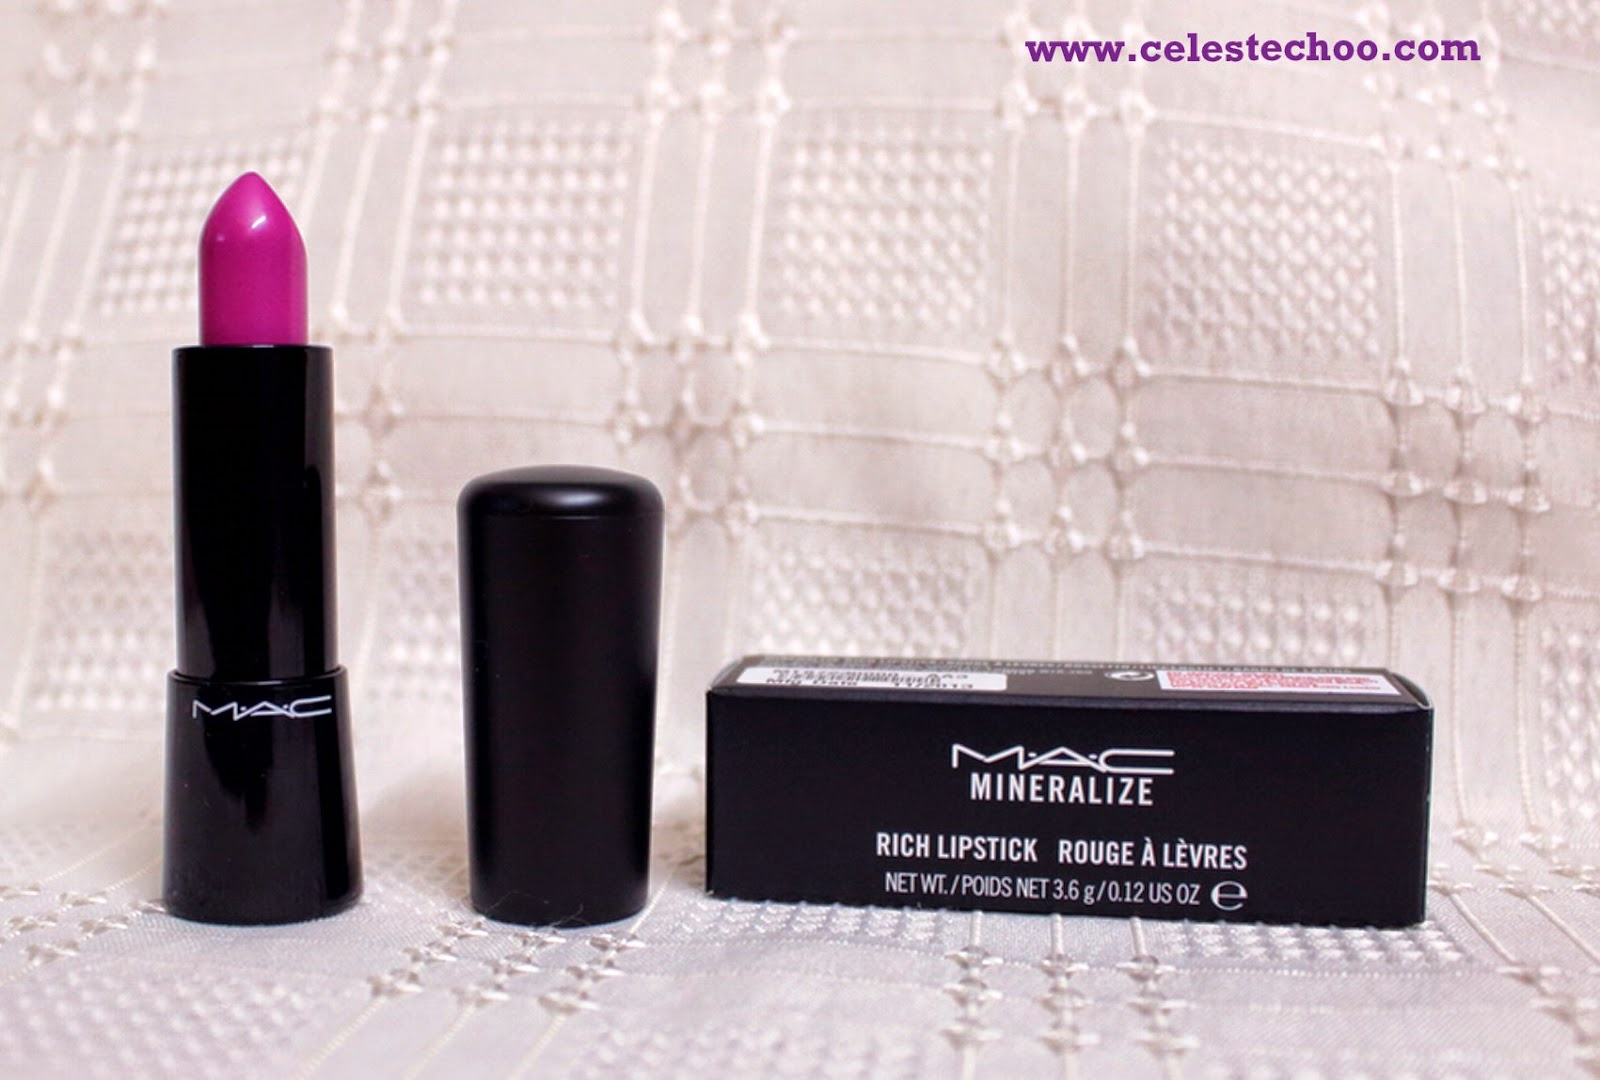 image-mac-mineralize-rich-lipstick-with-box-malaysia